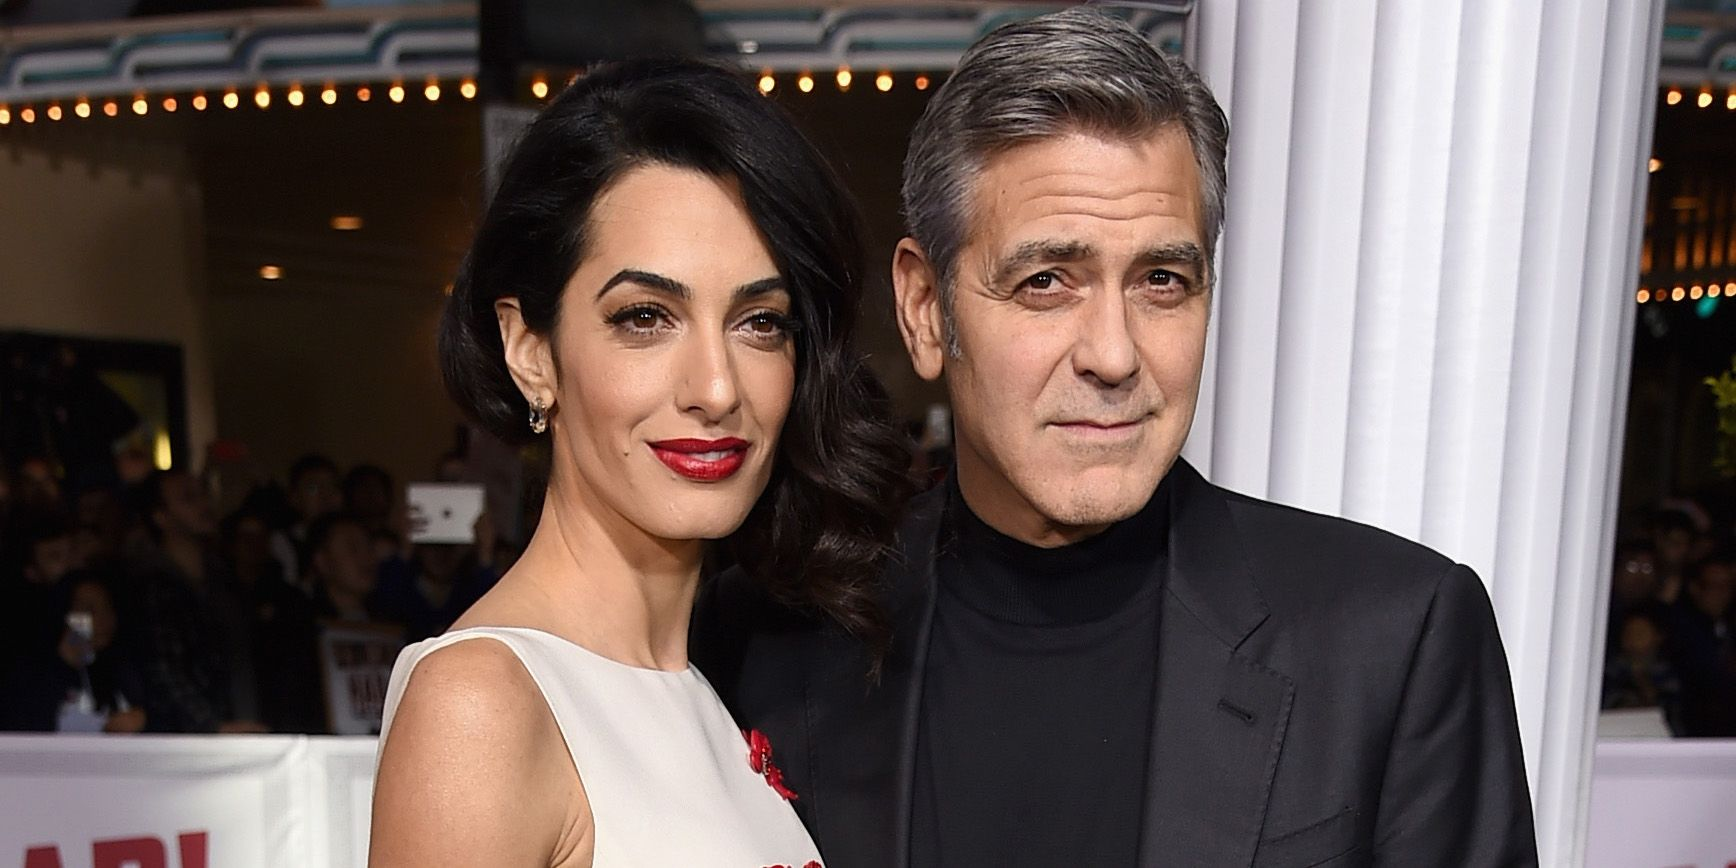 George and Amal Clooney Have Revealed the Sex of Their Twins